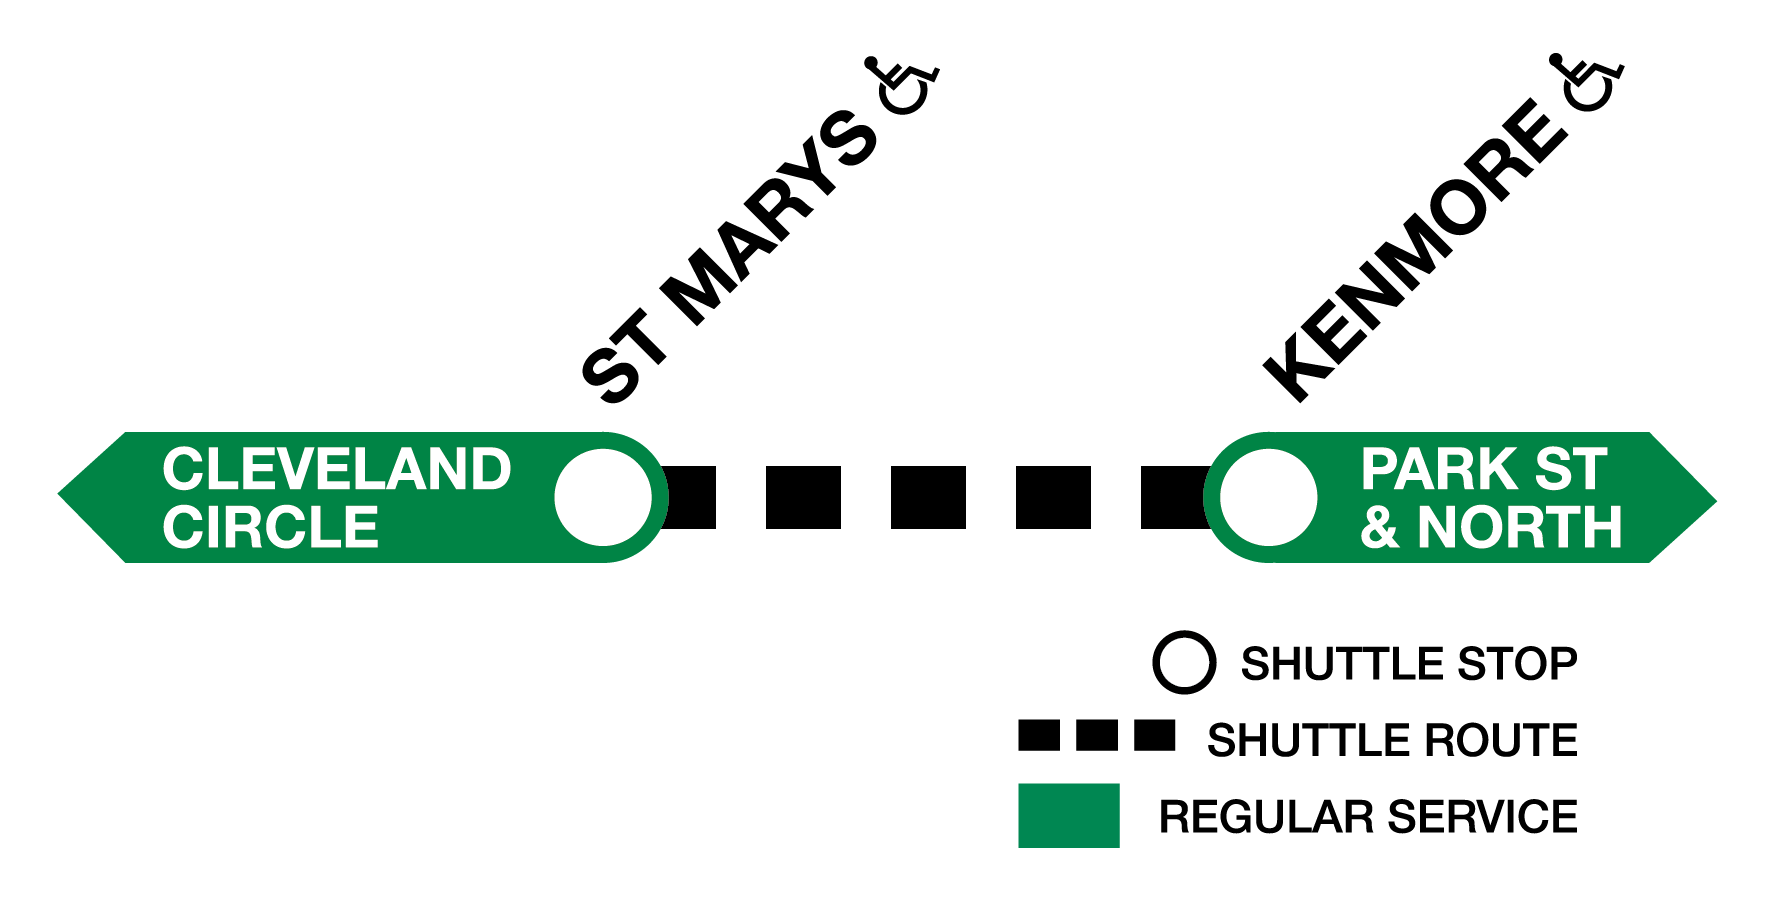 Green Line C branch diagram showing shuttle service between St. Mary's Street and Kenmore.